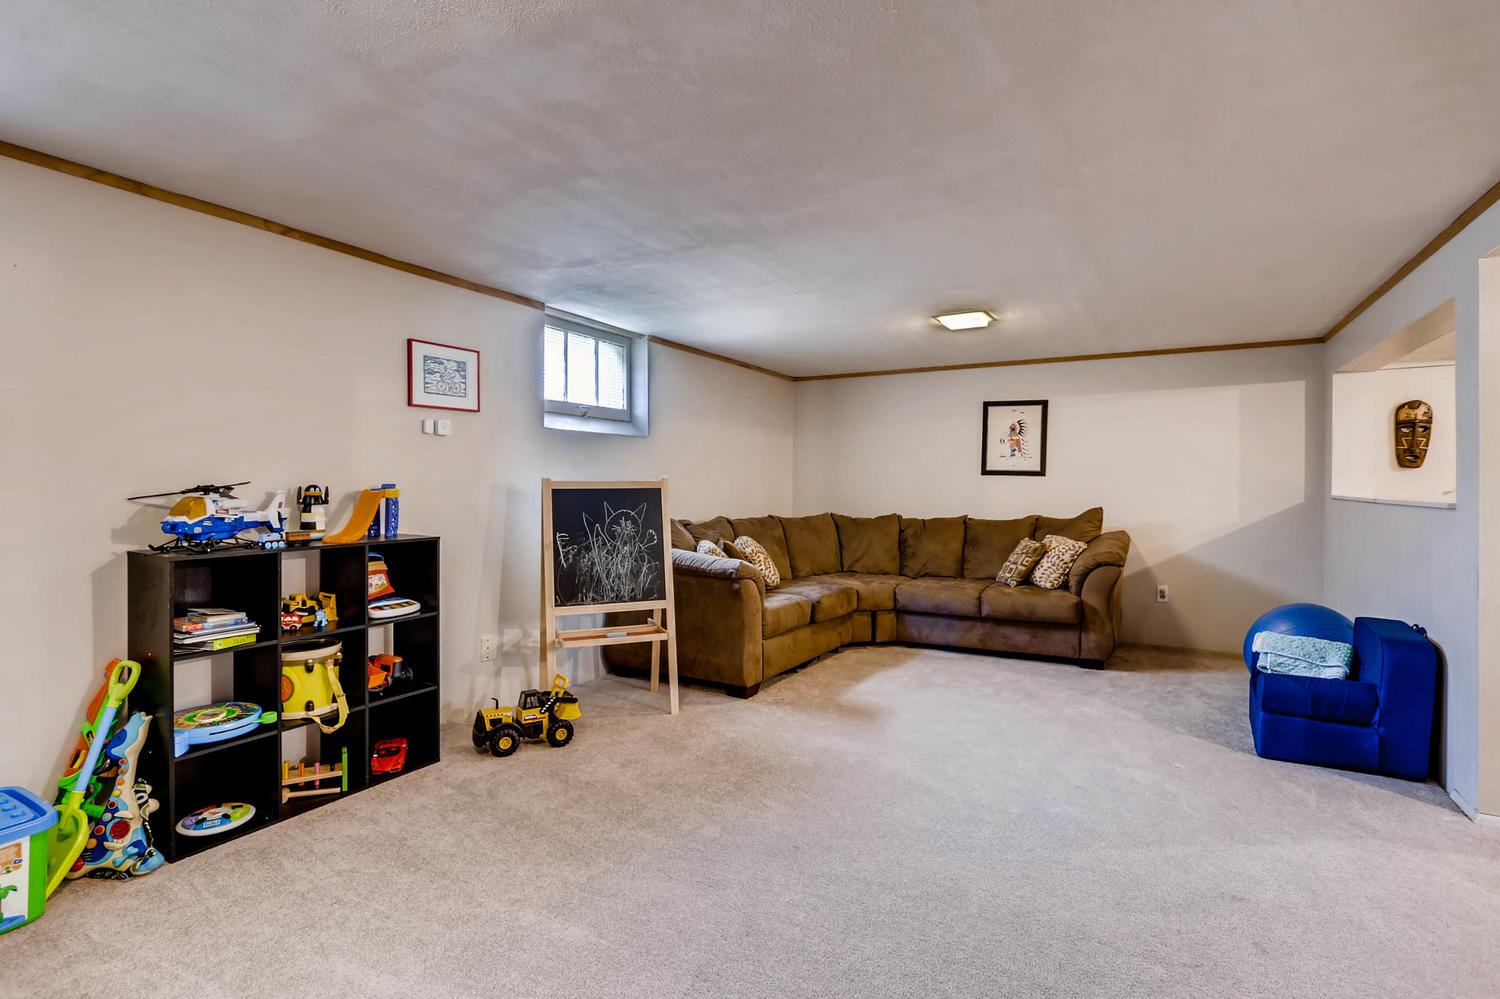 2519 3rd St NE Minneapolis MN-large-020-13-Lower Level Family Room-1500x1000-72dpi.jpg